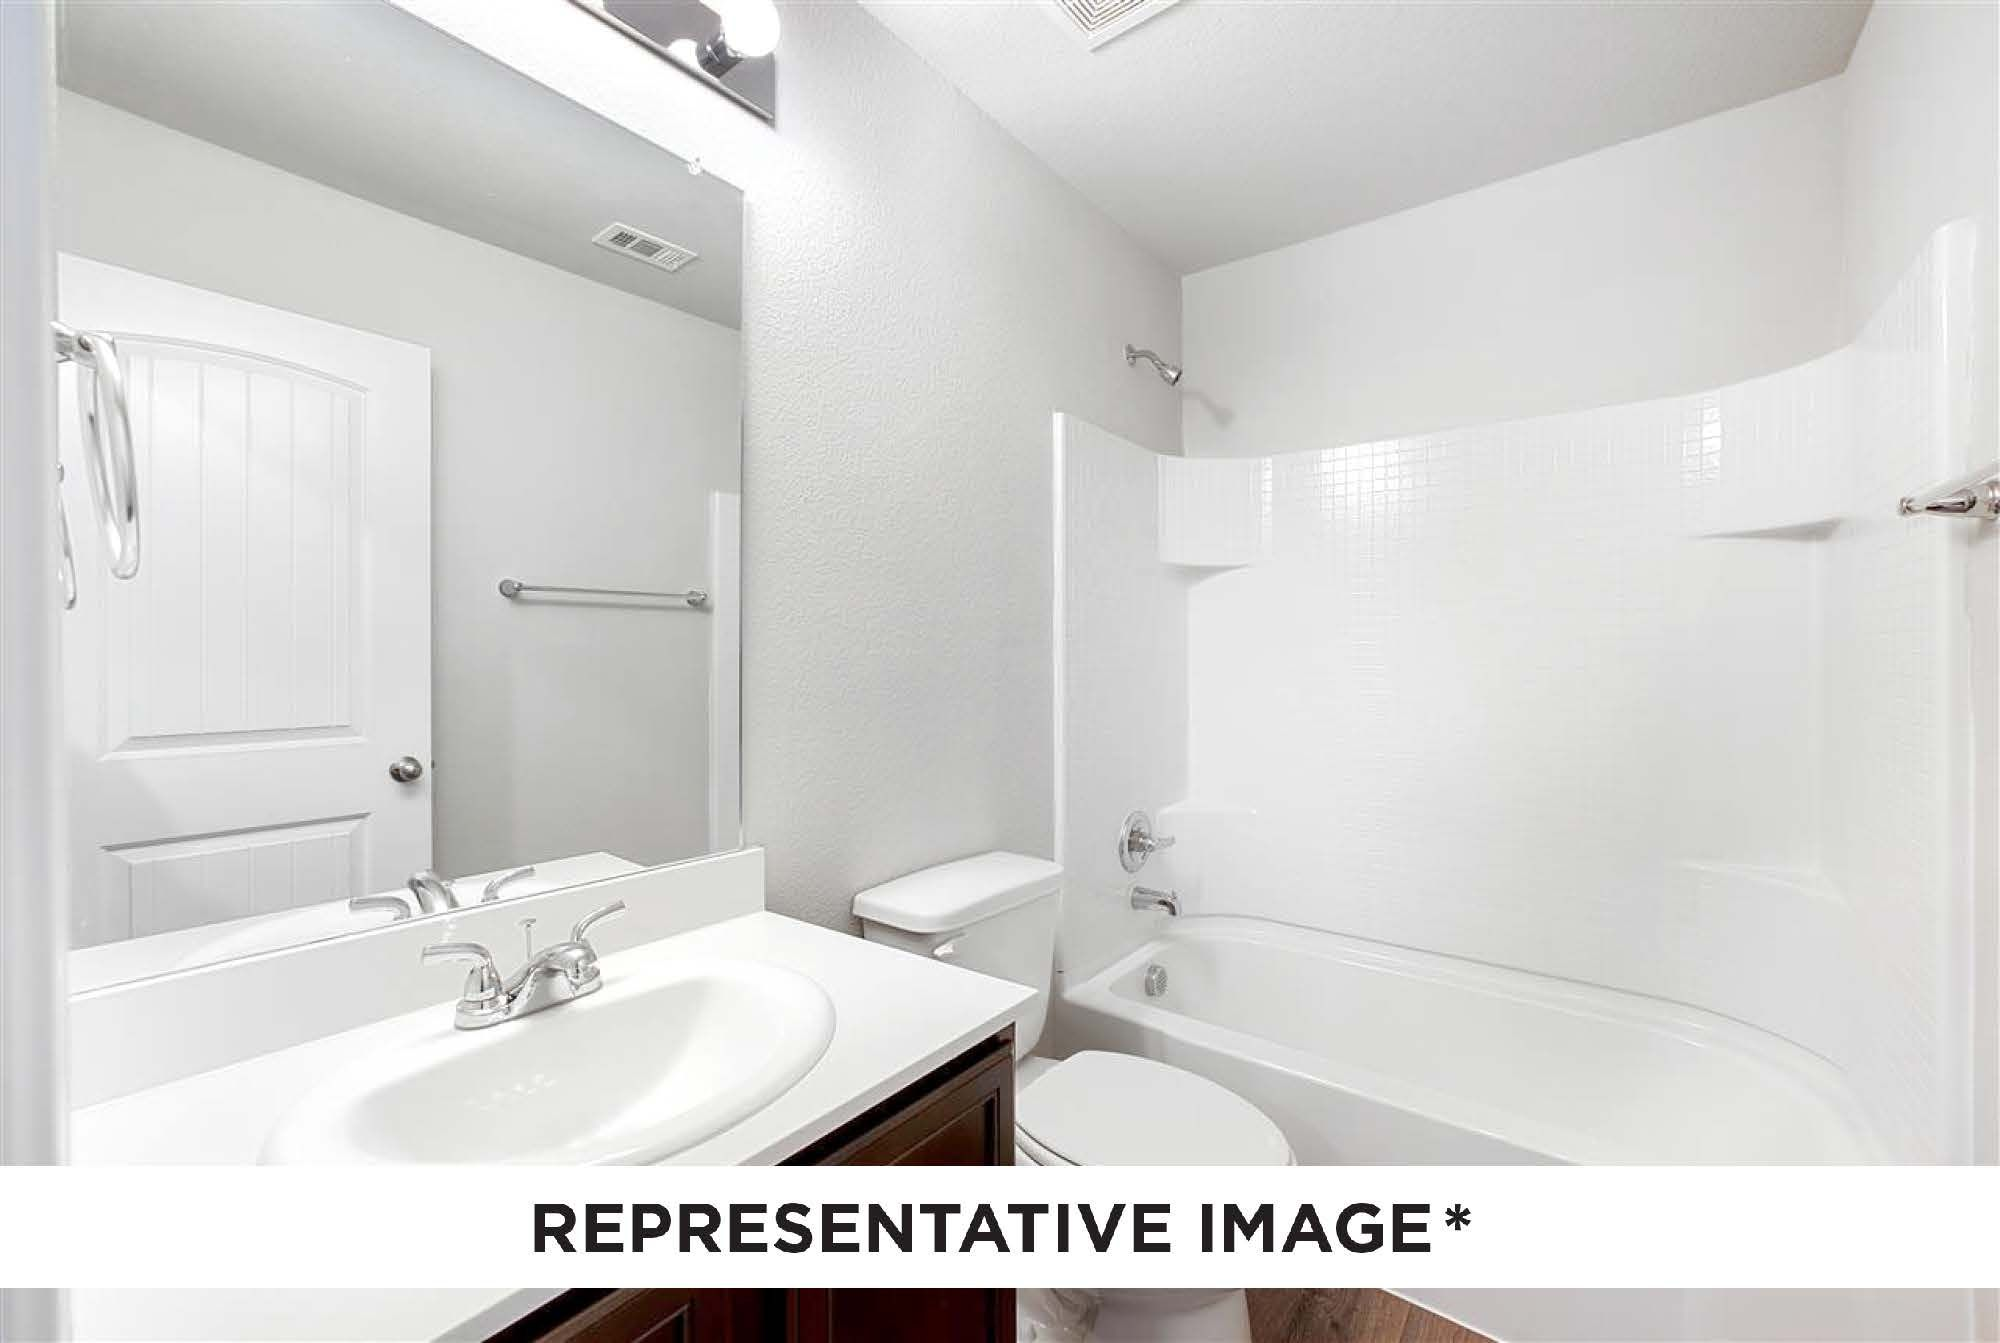 Bathroom featured in the Aspen By HistoryMaker Homes    in Sherman-Denison, TX